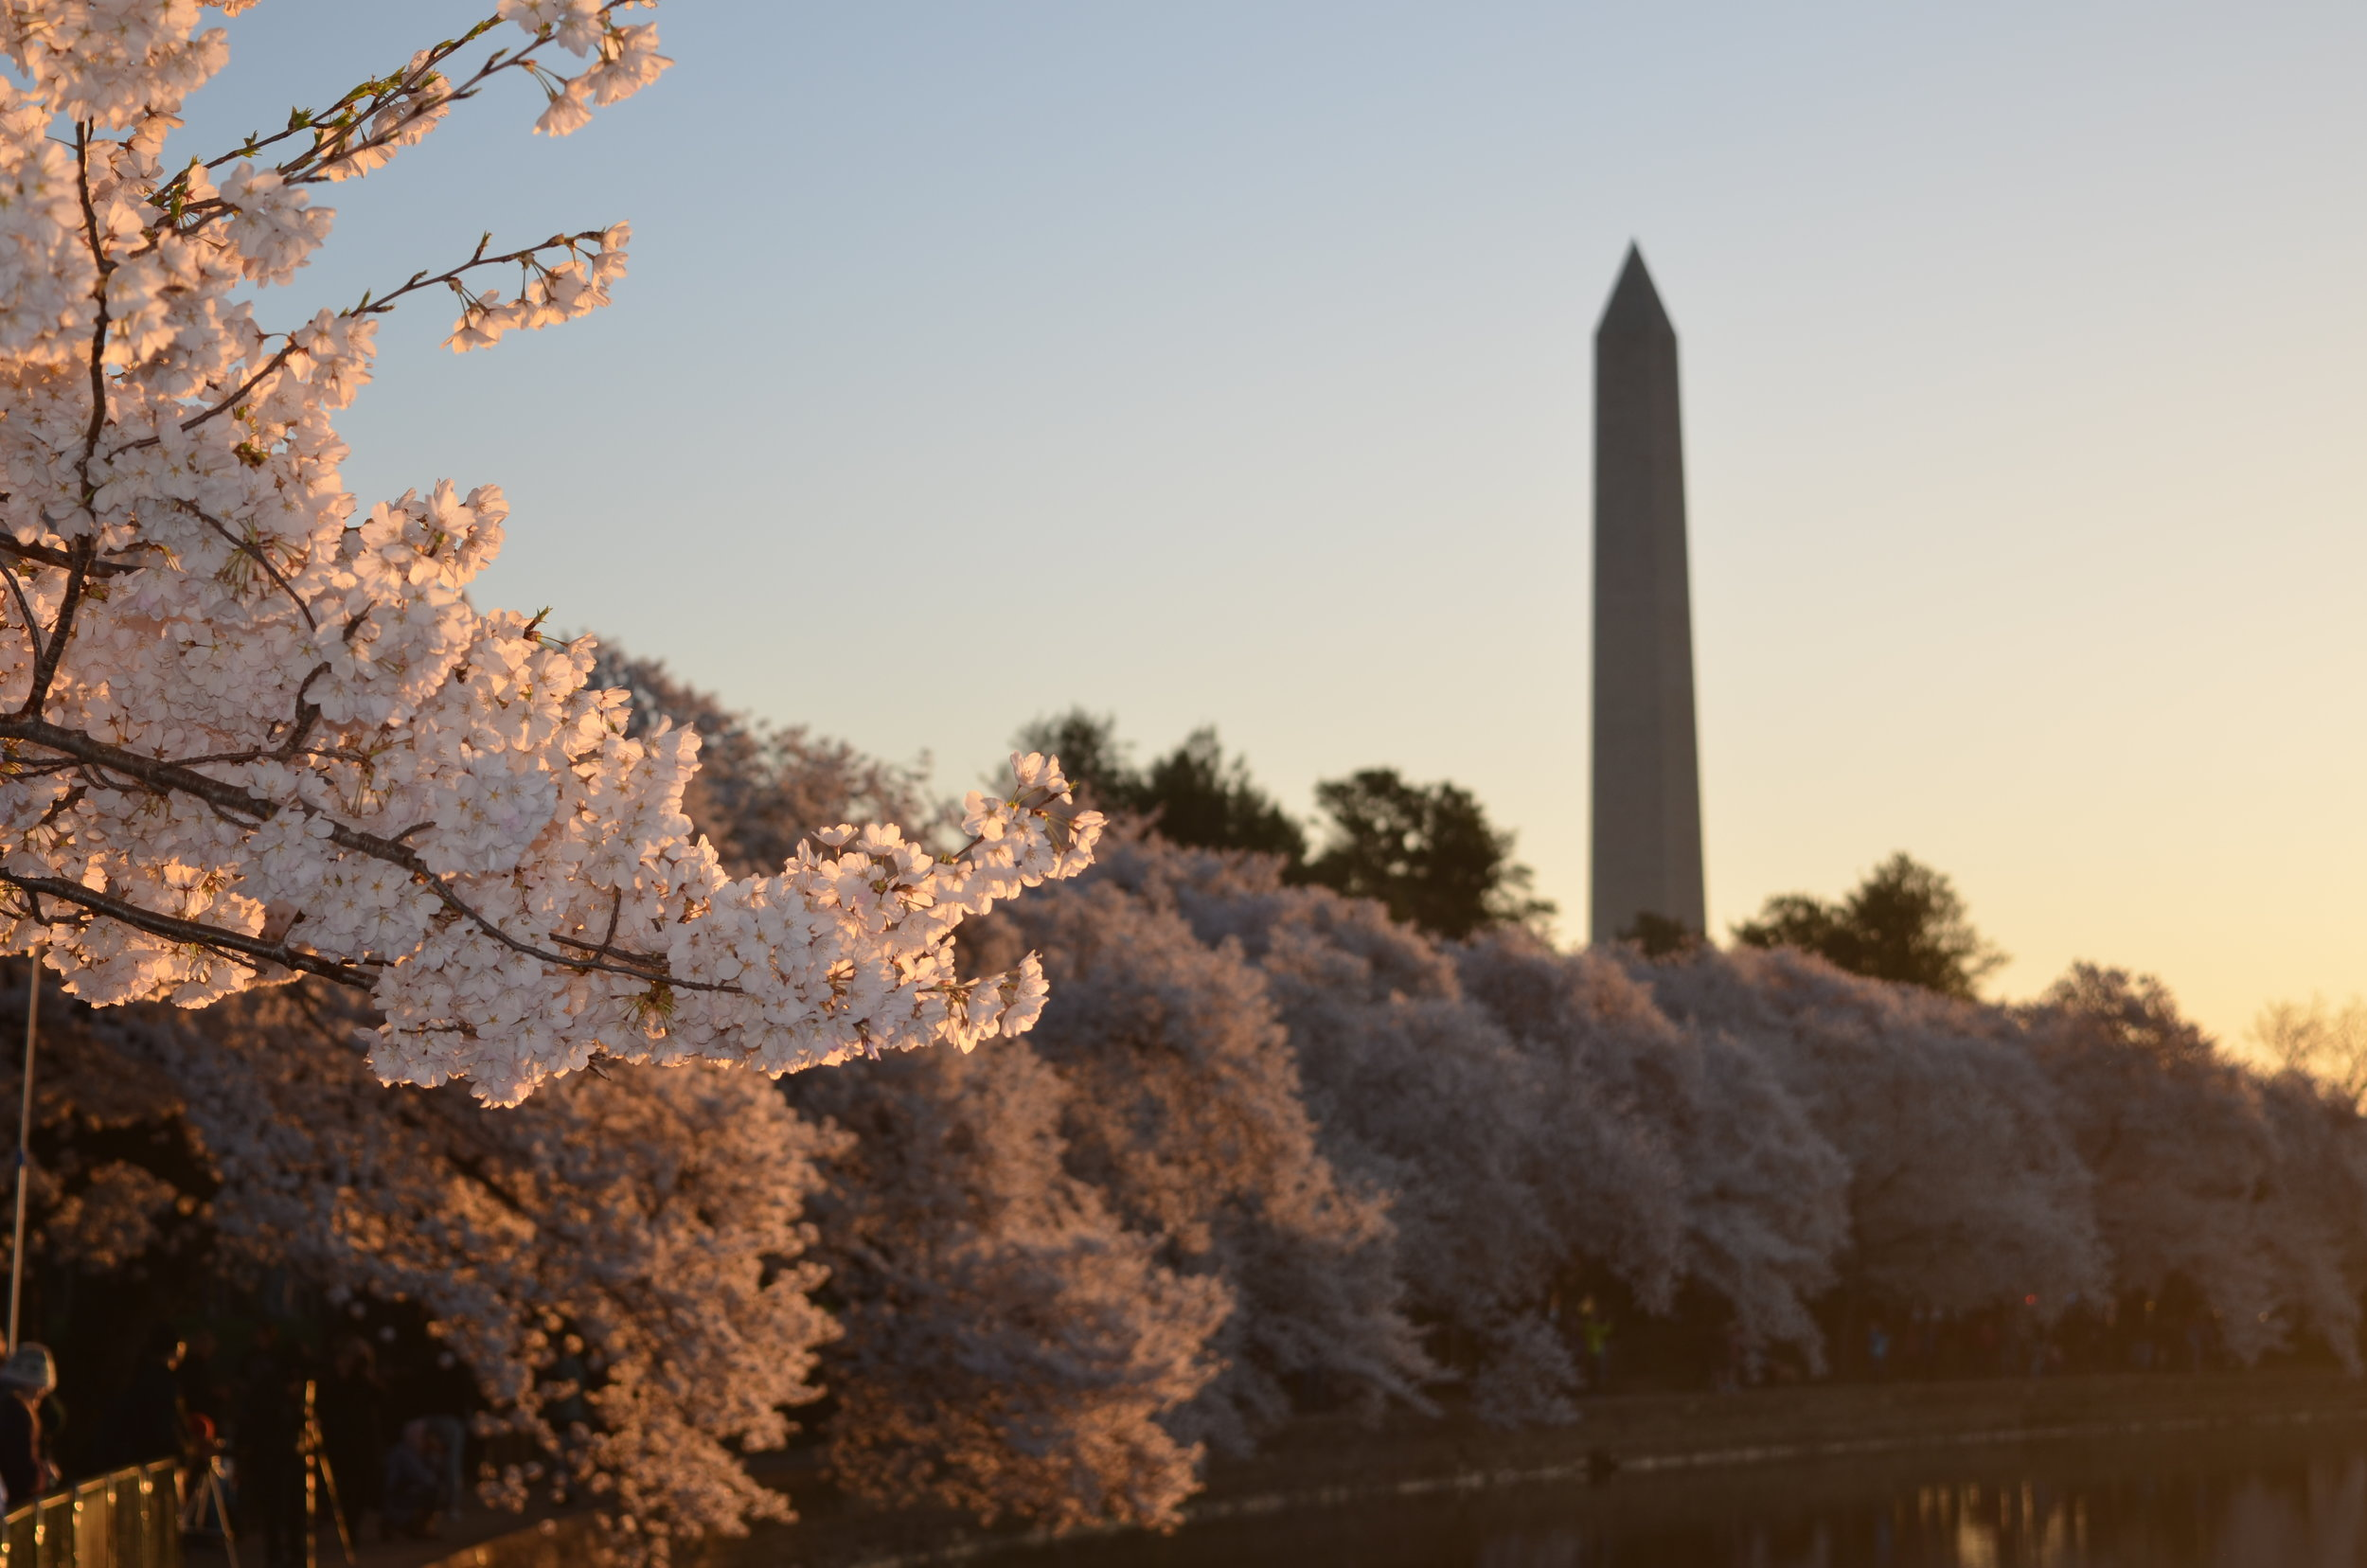 Washington dc hosts events with thought leaders